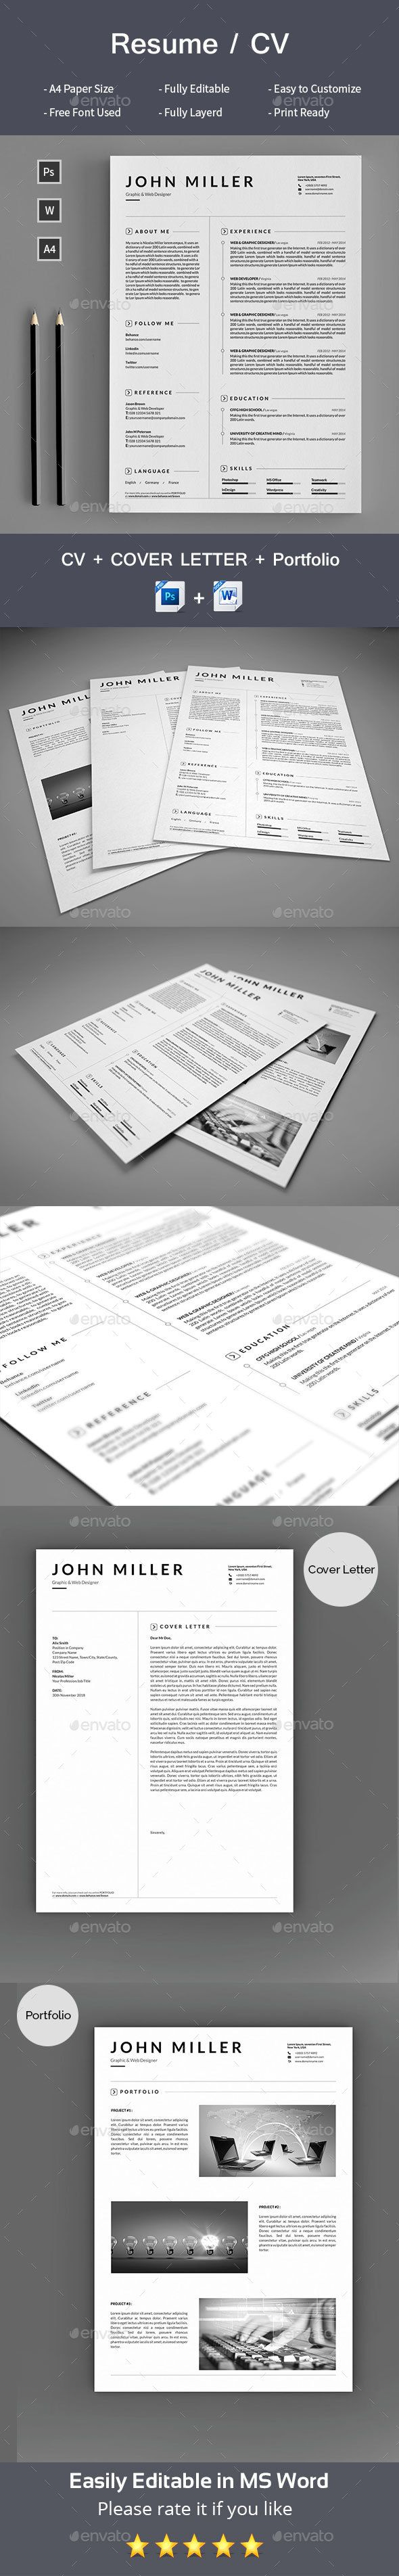 Resume 325 best Templates images on Pinterest